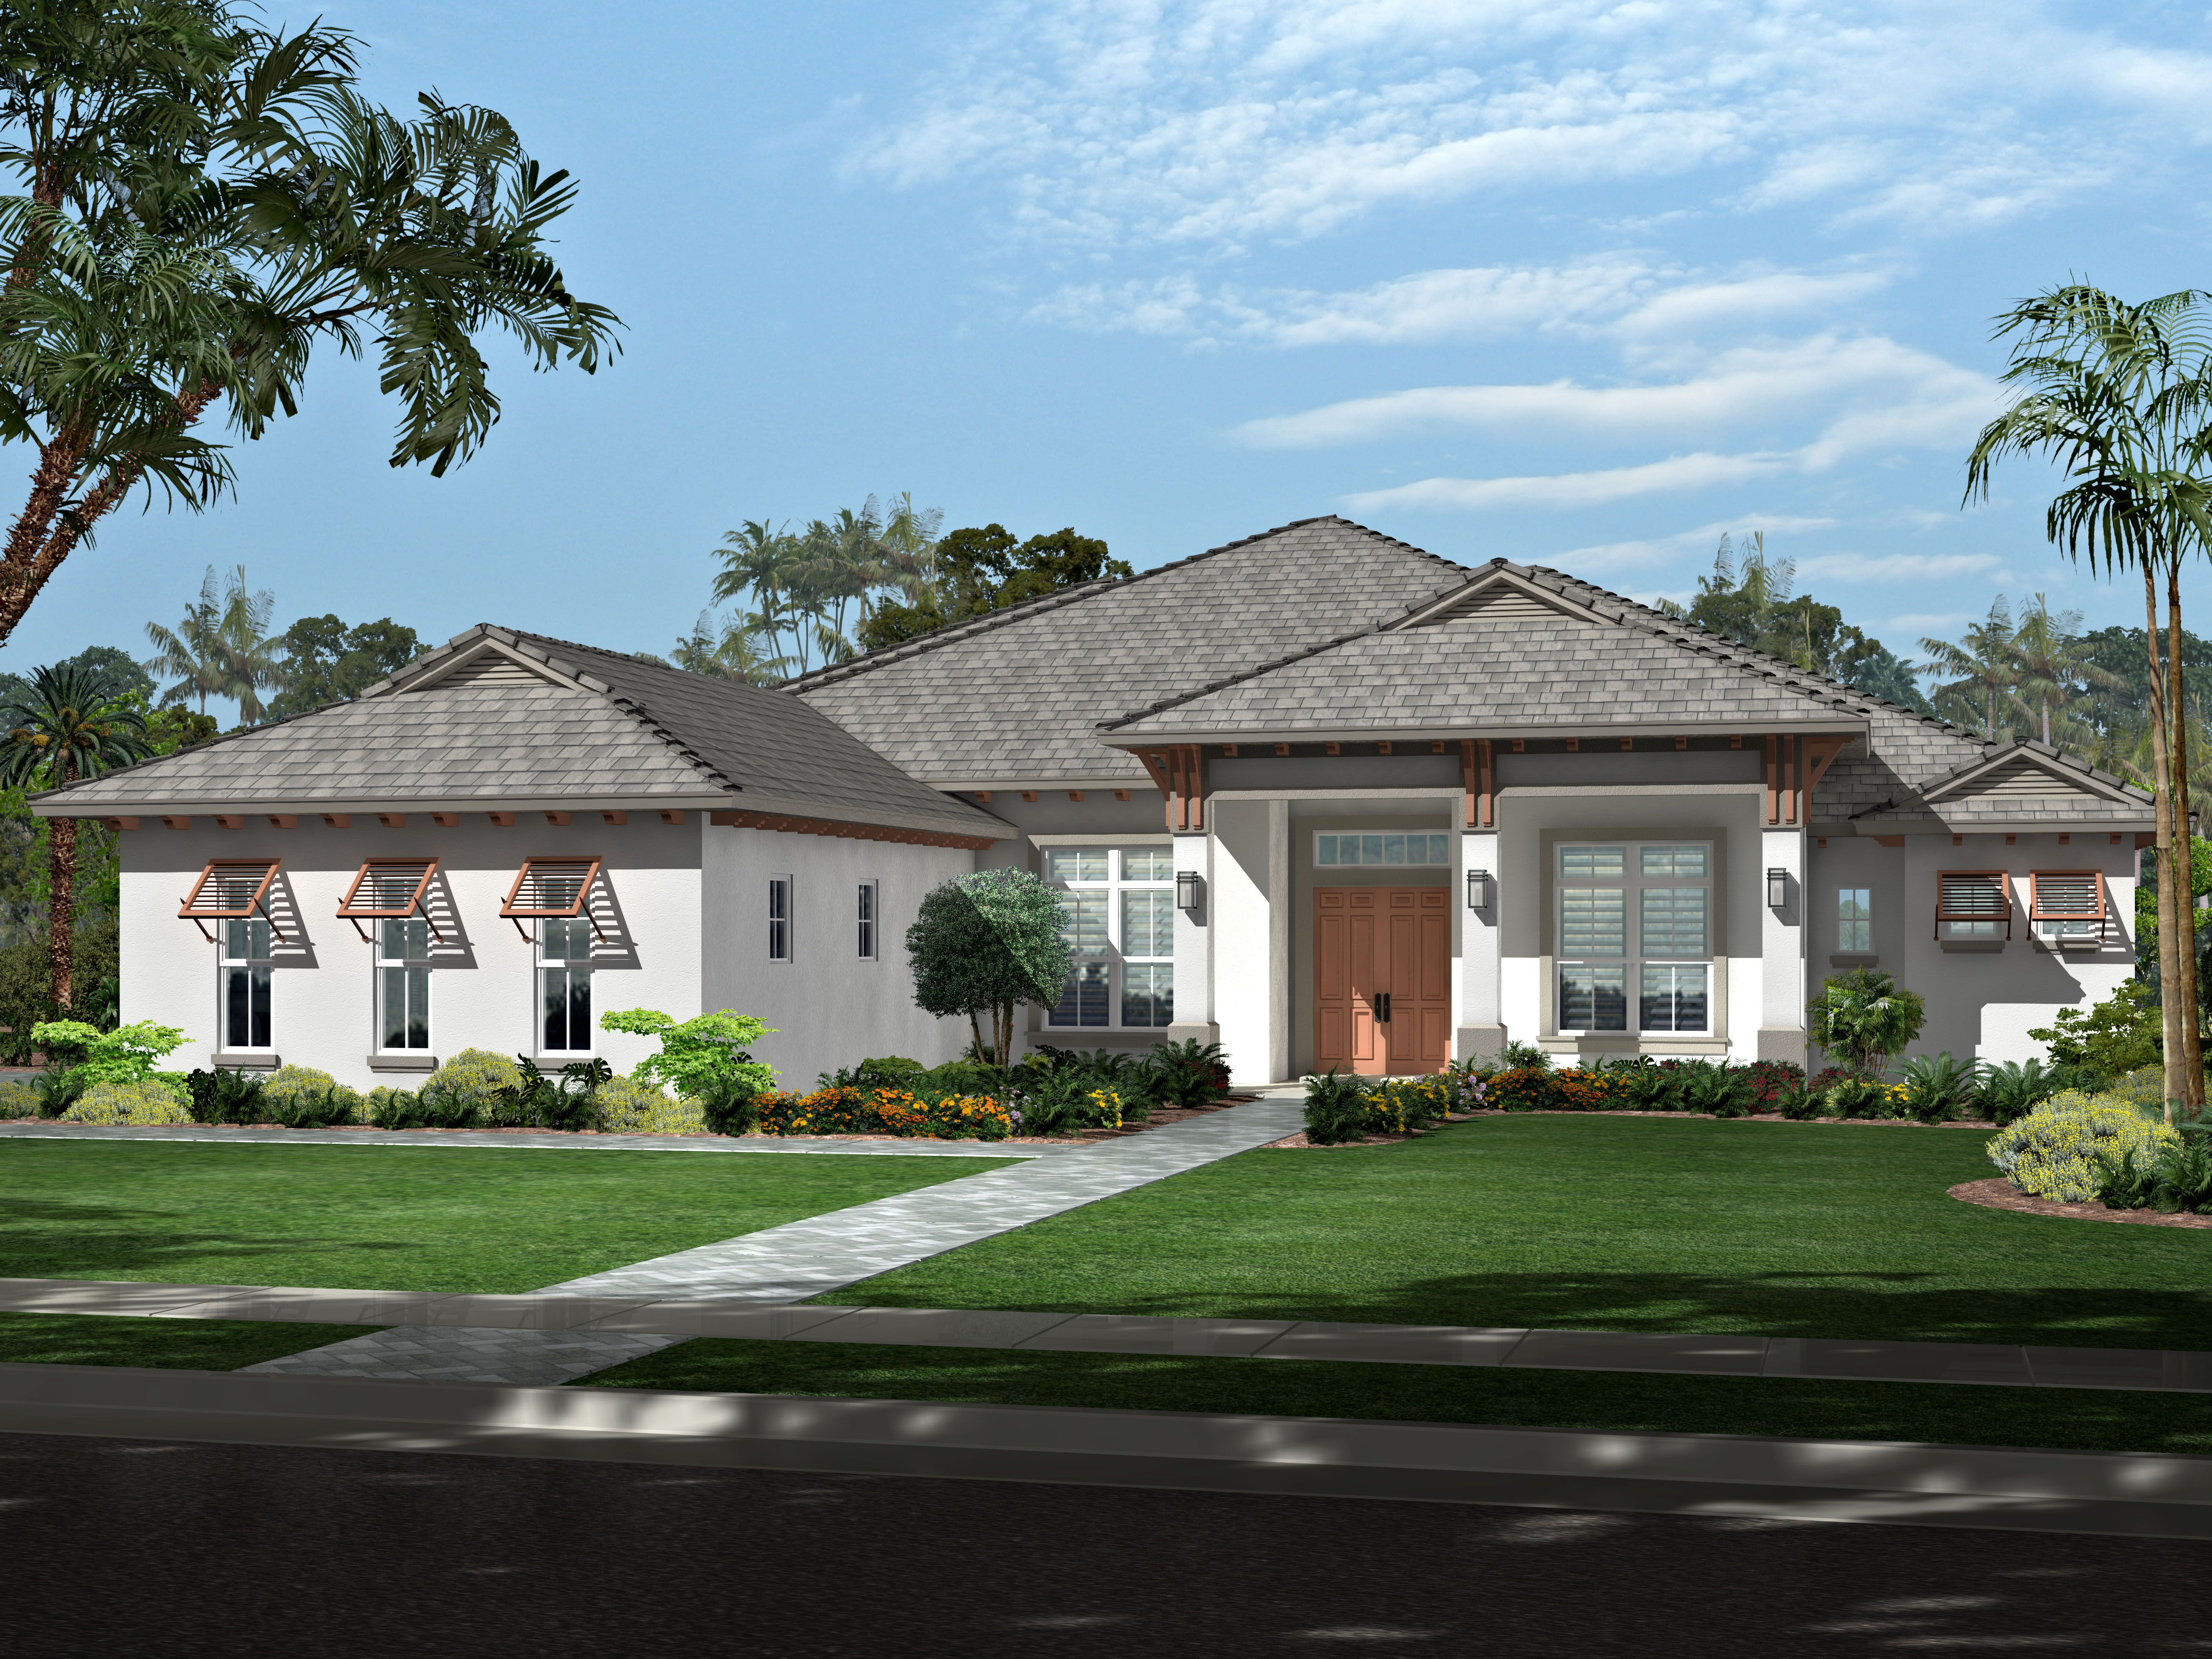 Angela Model: 4 bedrooms, 4 1/2 baths, Library